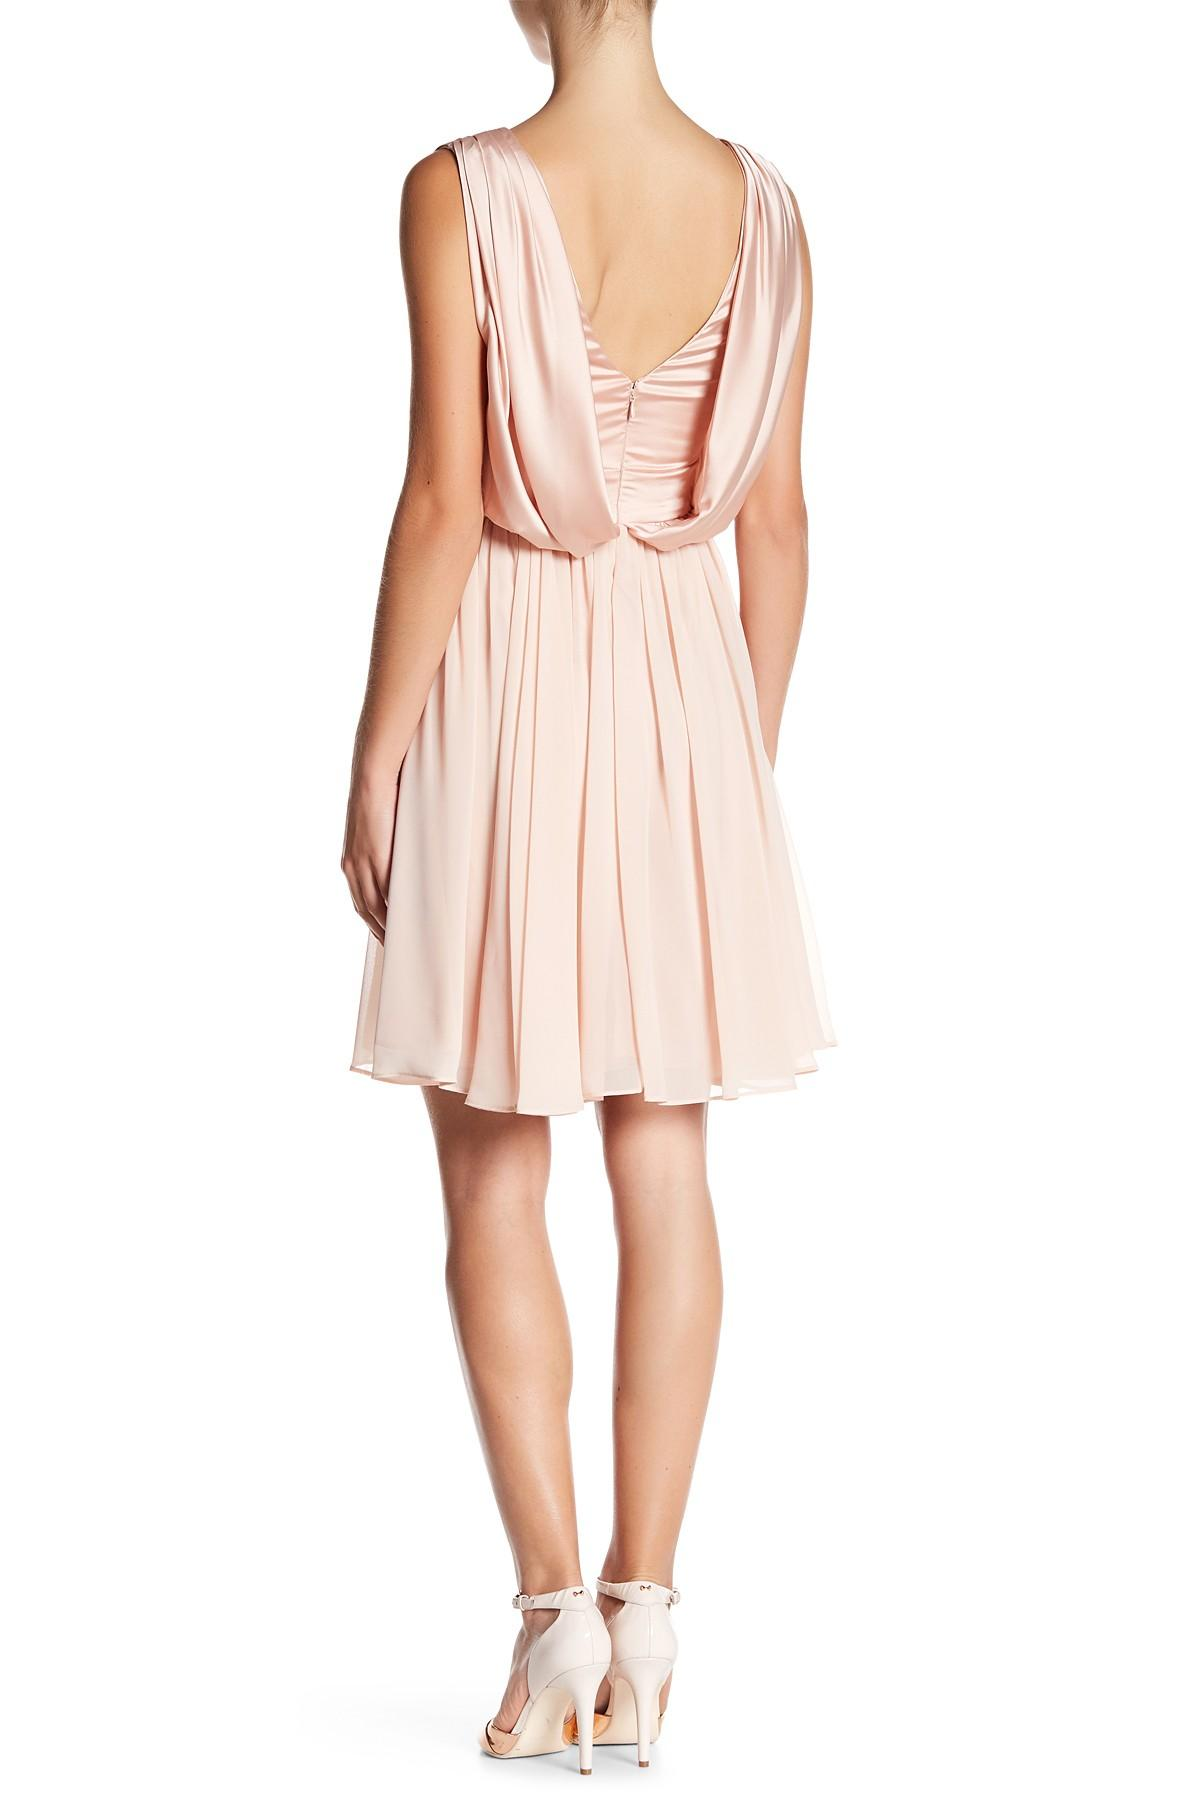 Lyst - Vera Wang Sleeveless Pleated Cocktail Dress in Pink